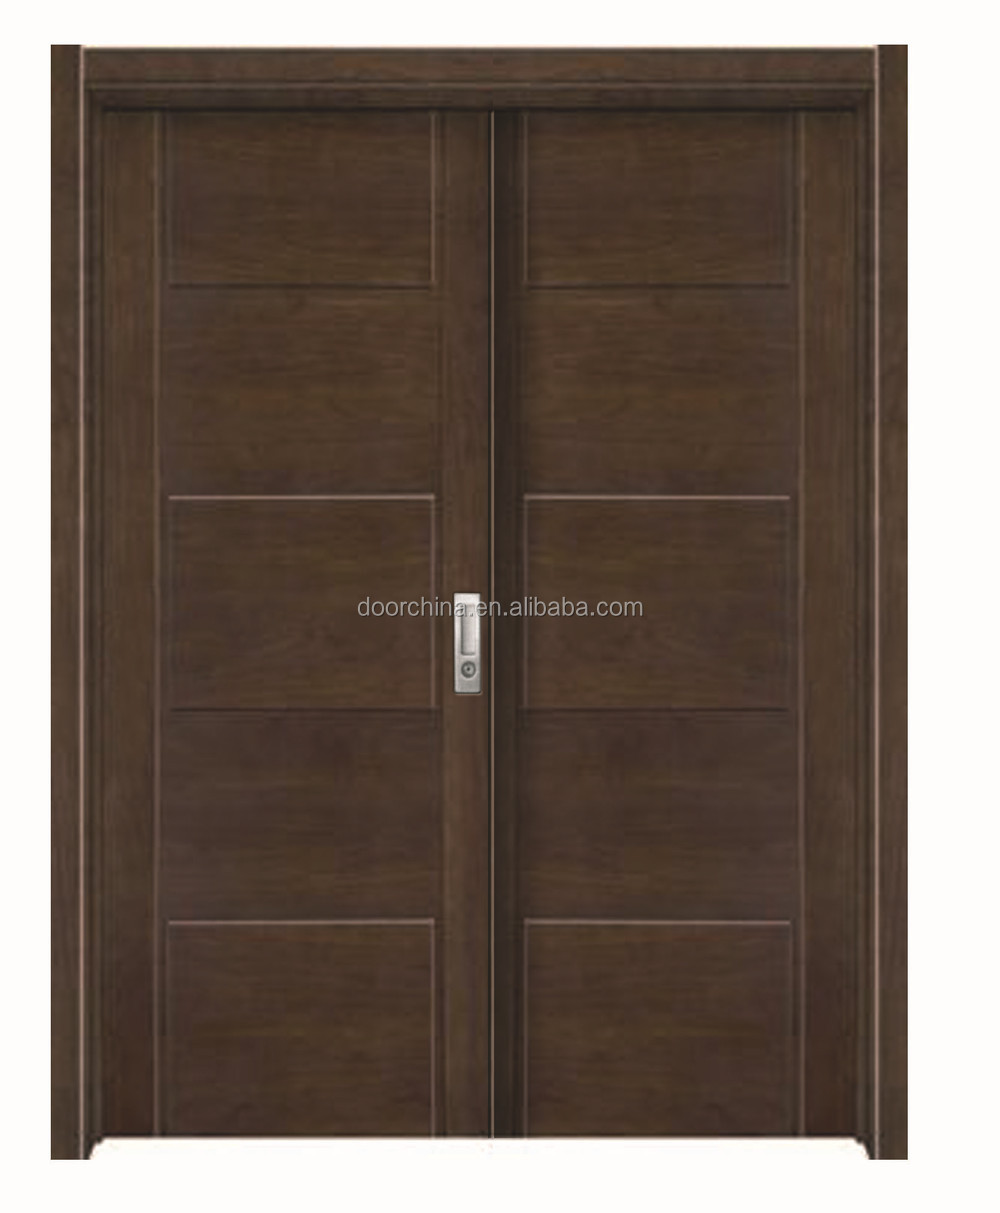 Pvc indian style wooden main door designs double door for Wooden double door designs for main door